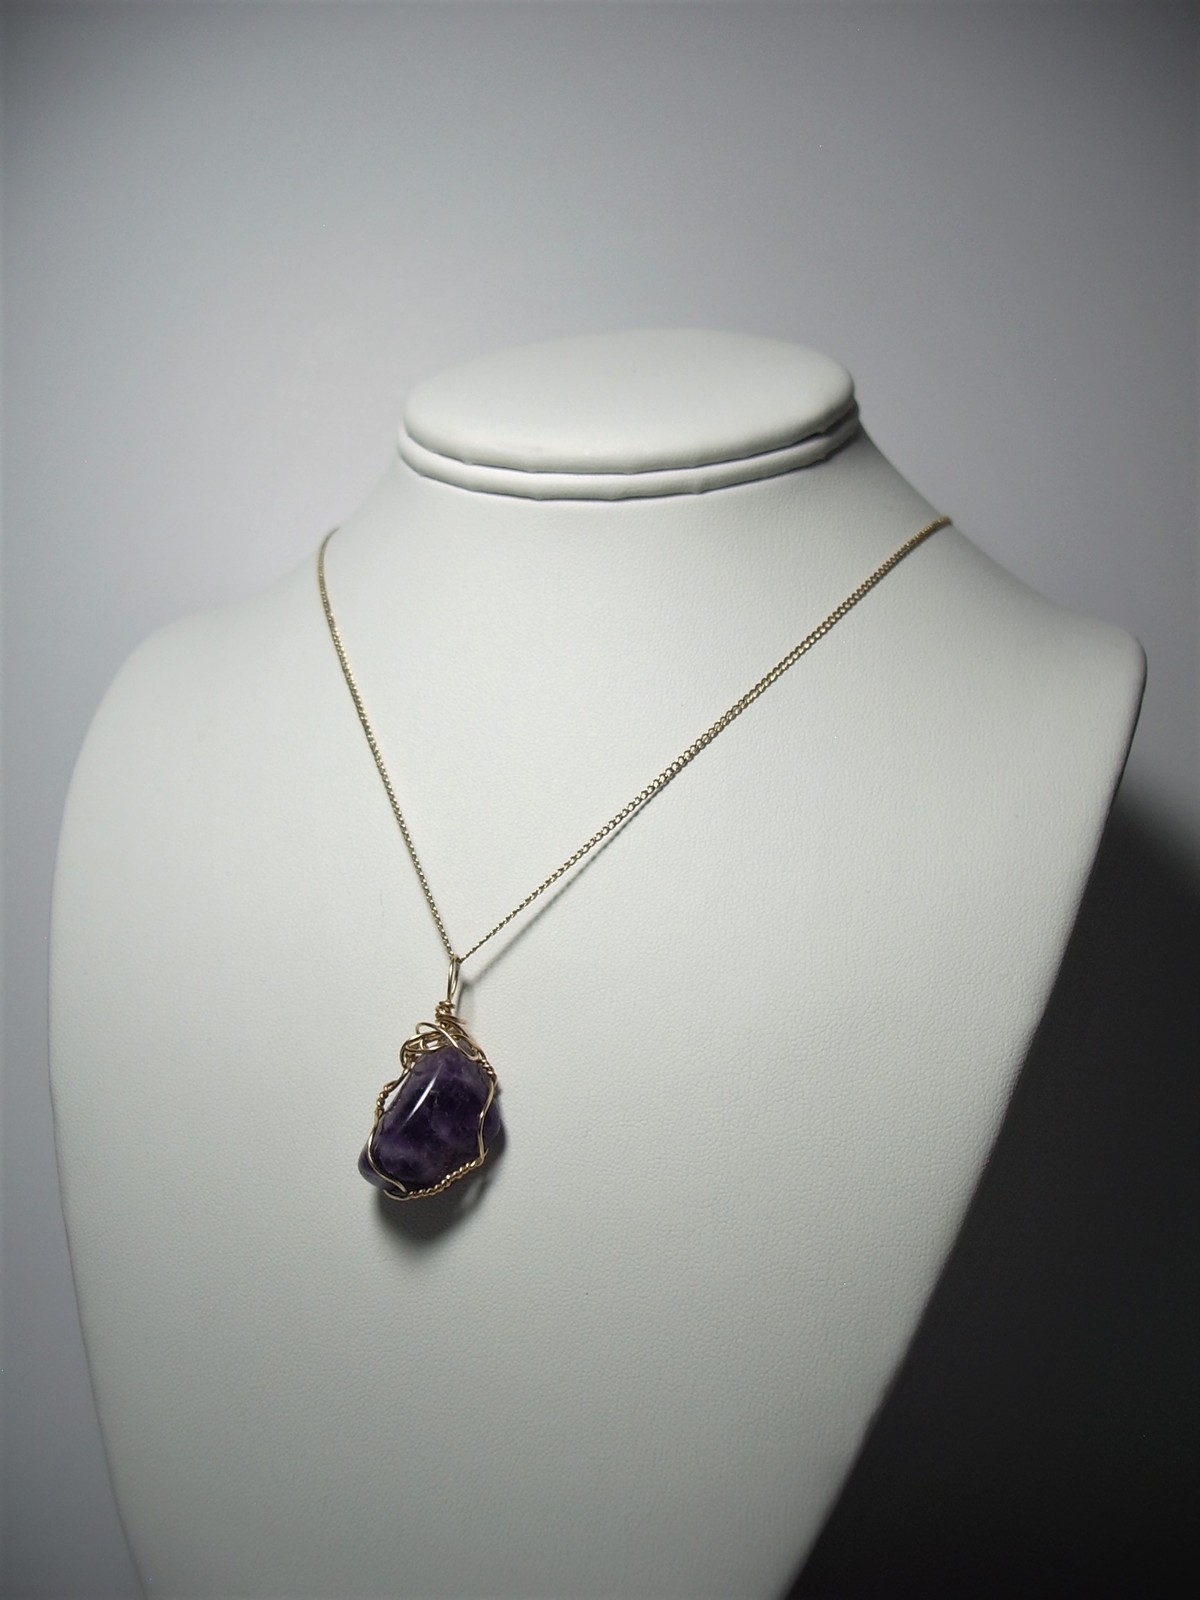 Amethyst Pendant Wire Wrapped 14/20 Gold Filled Handcrafted by Jemel